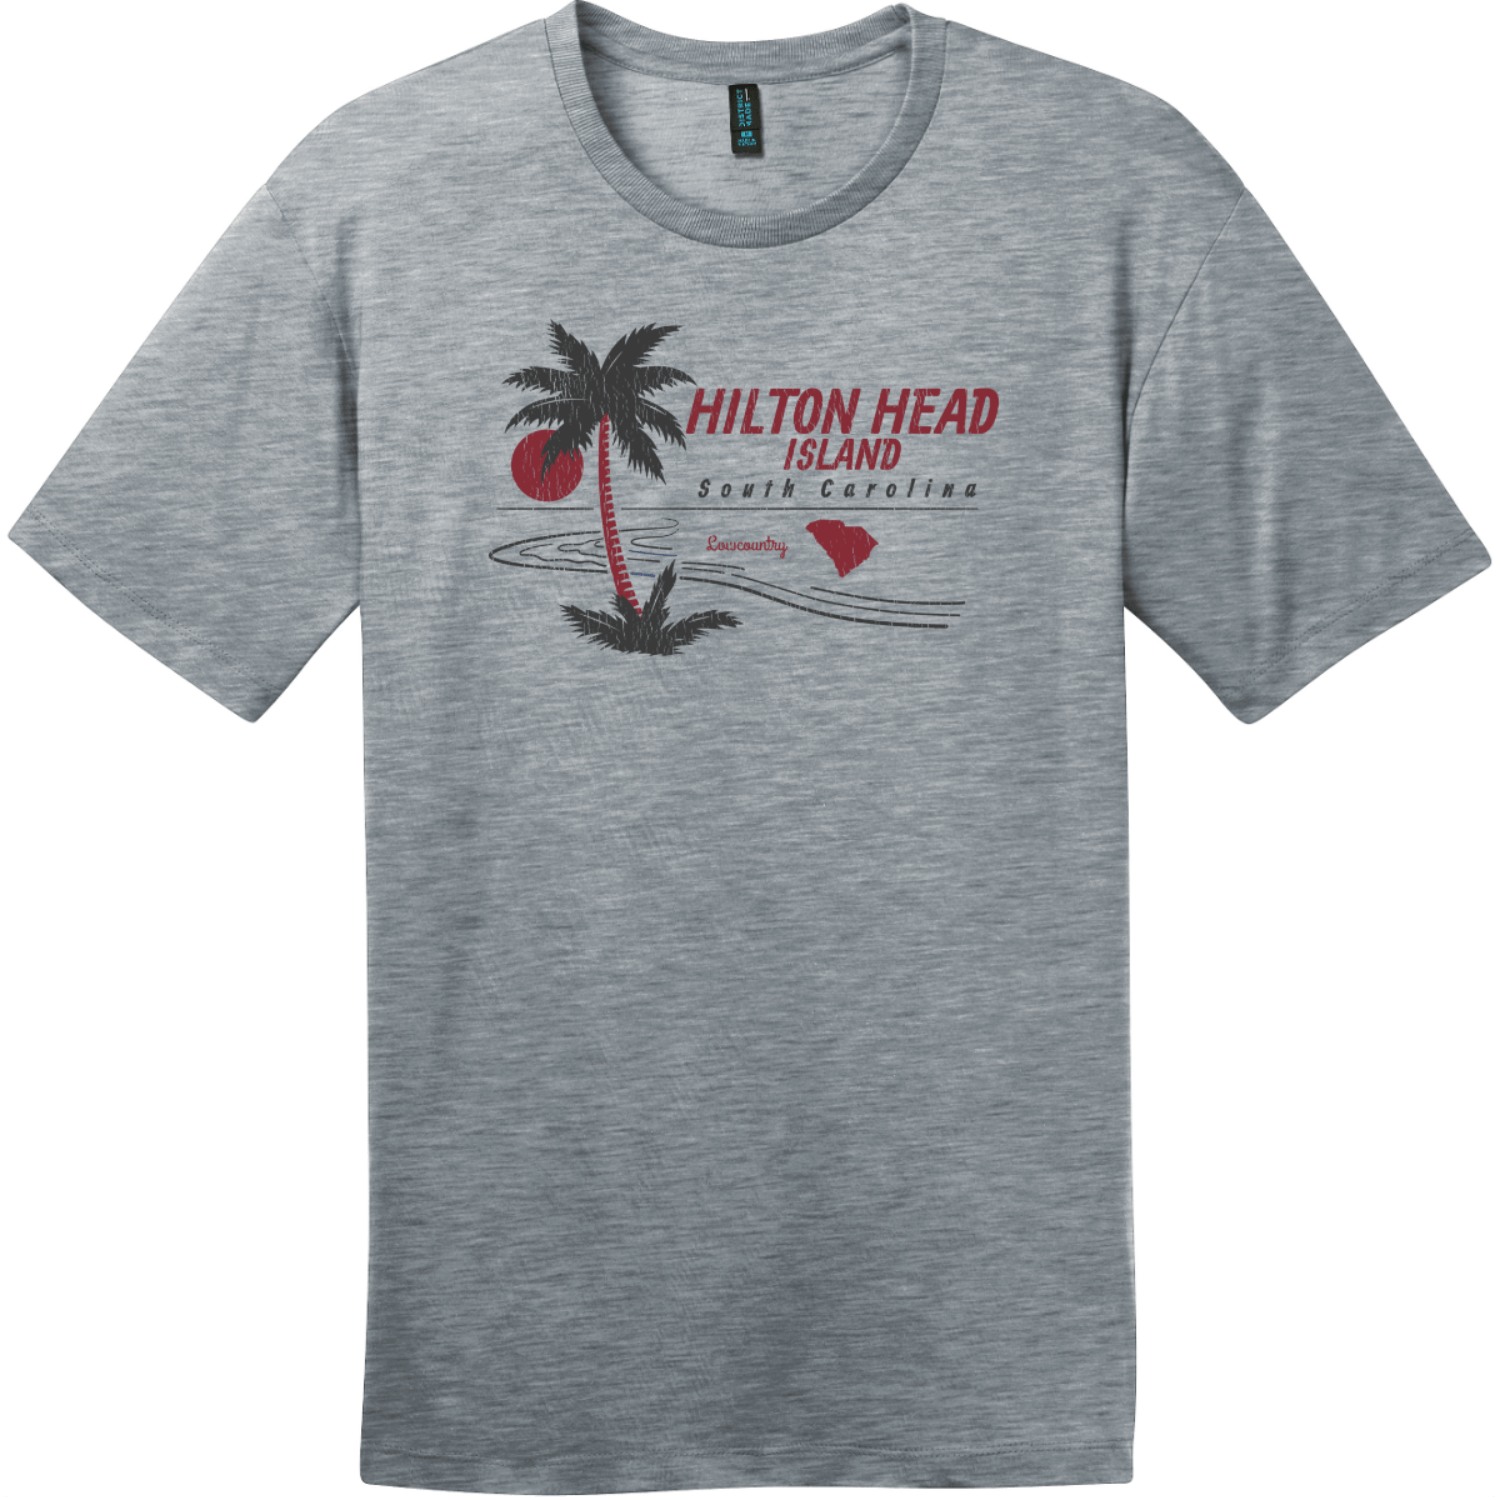 Hilton Head Island Lowcountry T-Shirt Heathered Steel District Perfect Weight Tee DT104